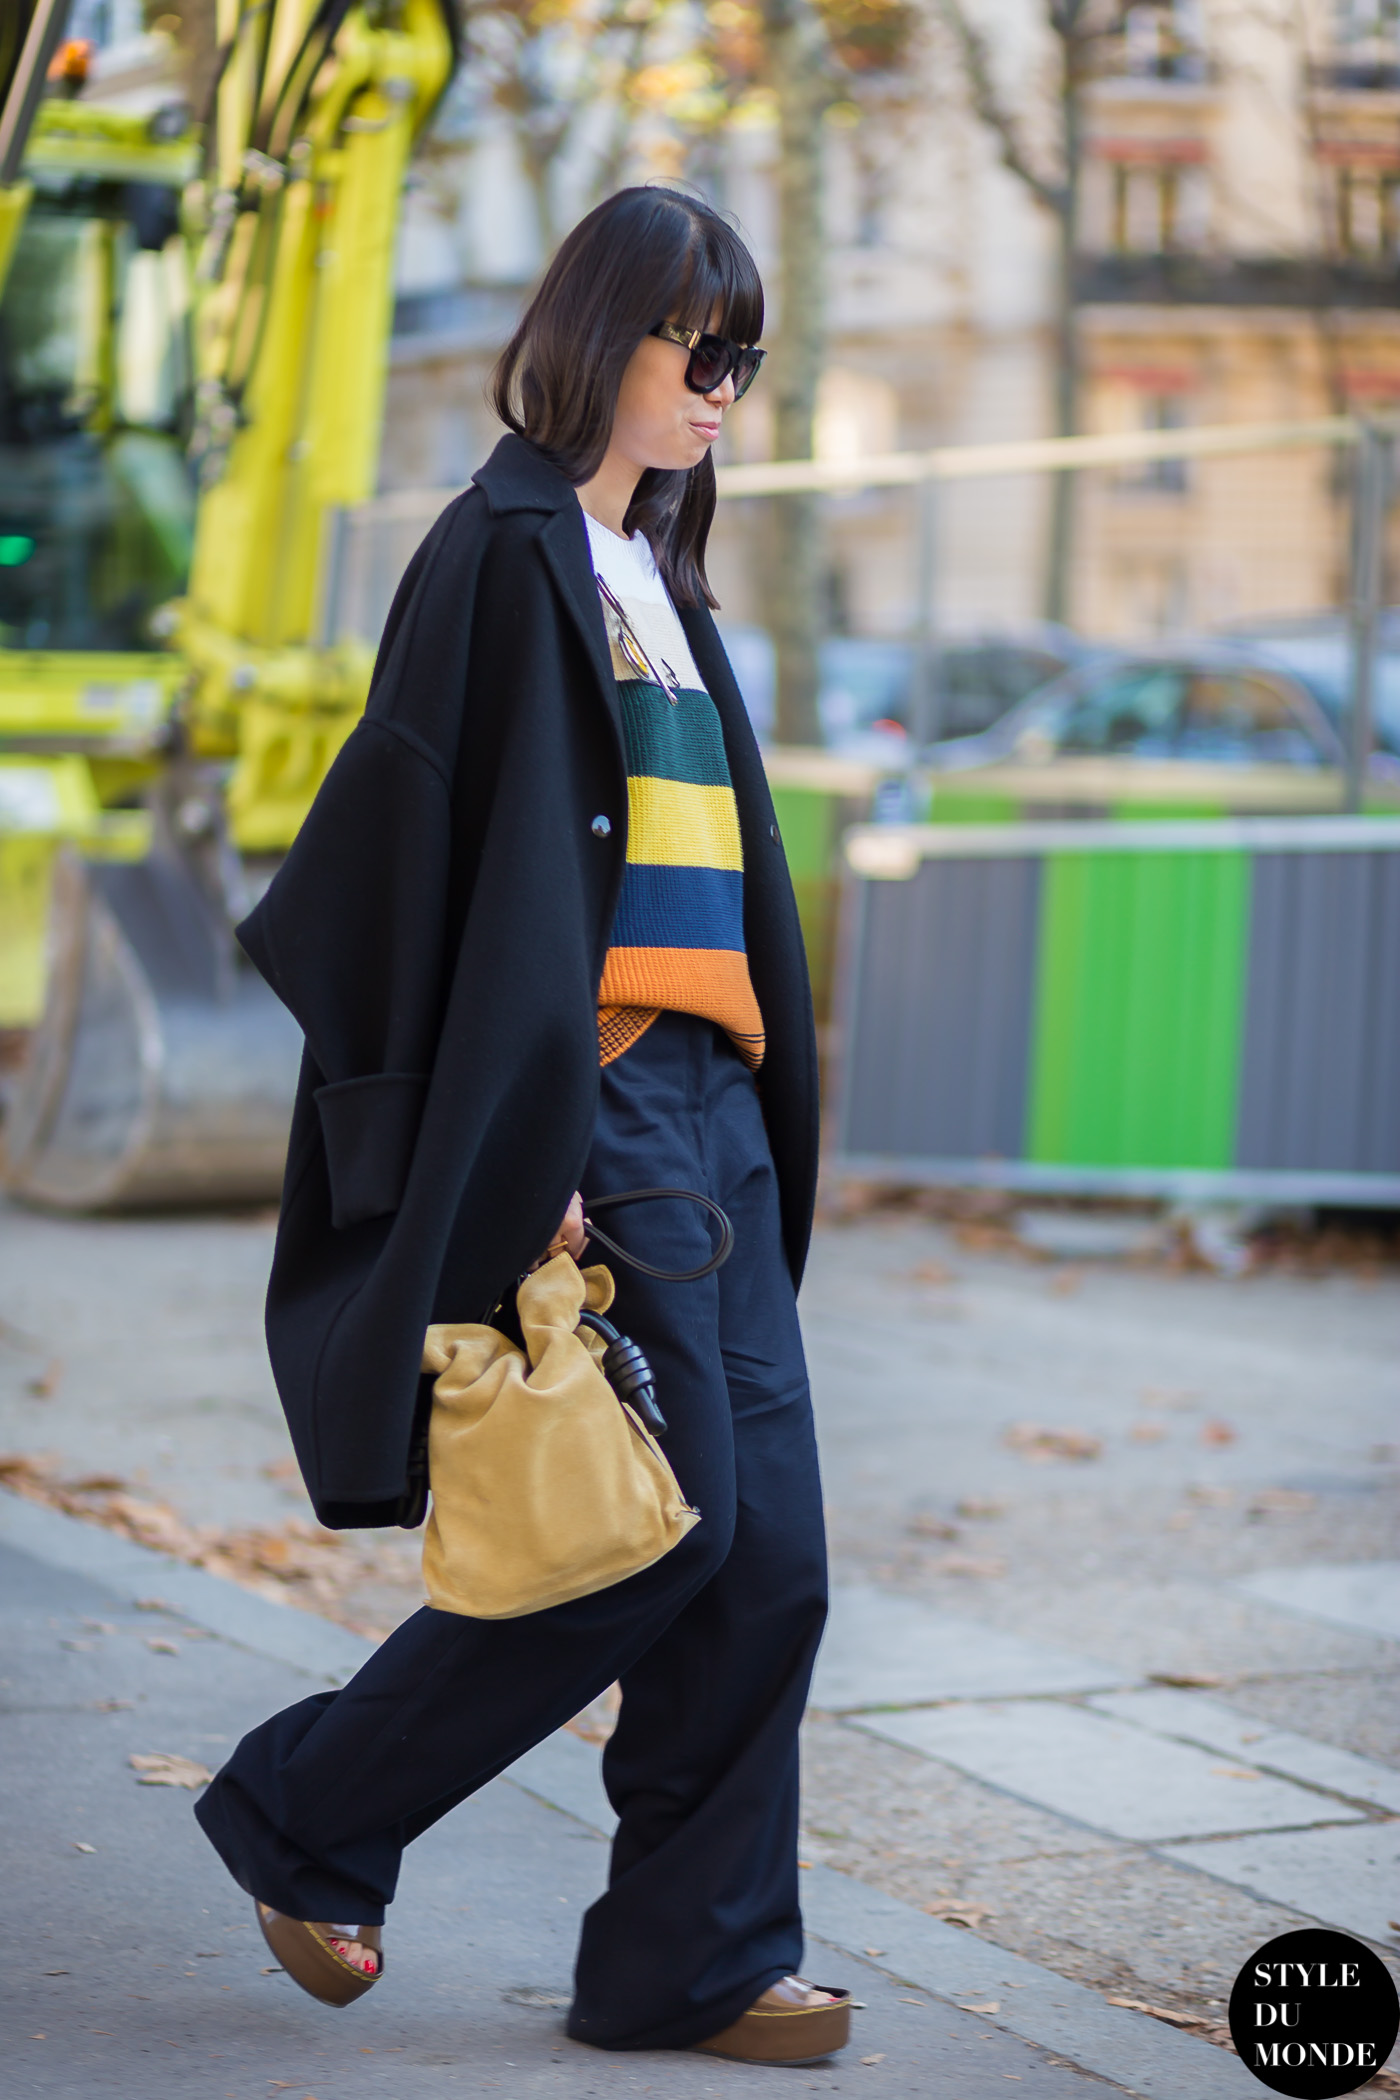 Leaf Greener Street Style Street Fashion Streetsnaps by STYLEDUMONDE Street Style Fashion Blog